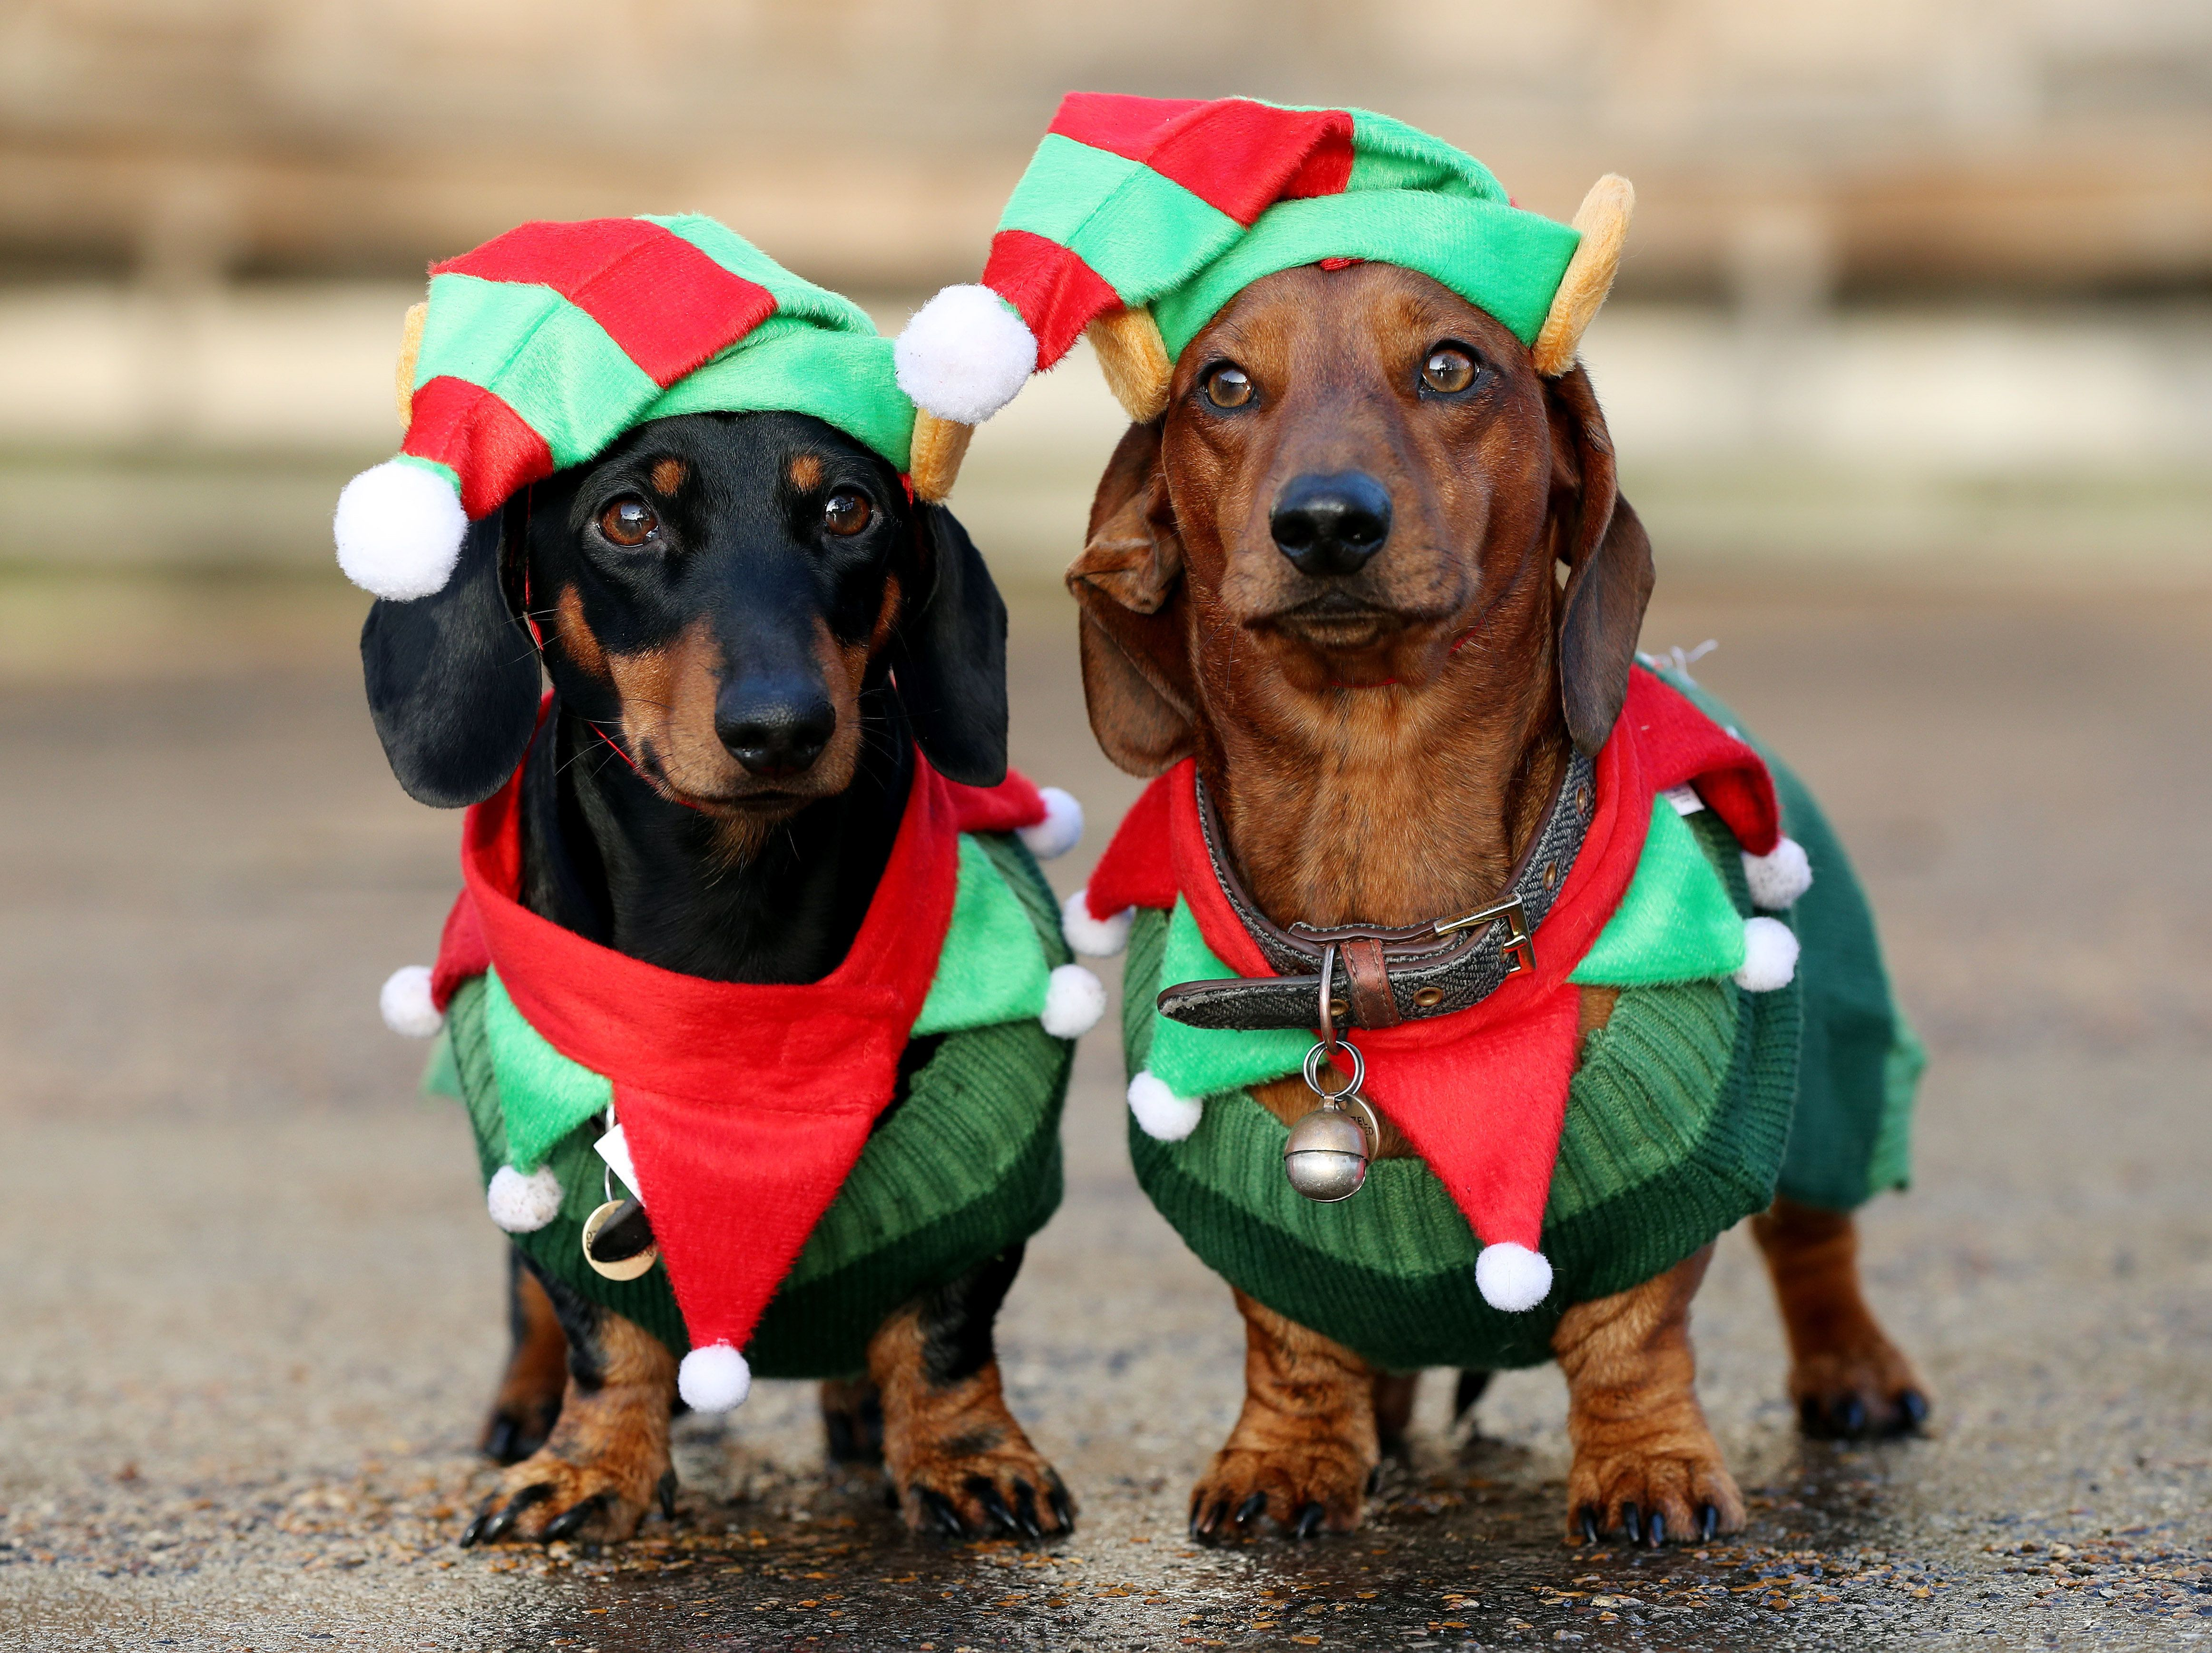 500 Festive Sausage Dogs Went On A Winter Walk And The Photos Are